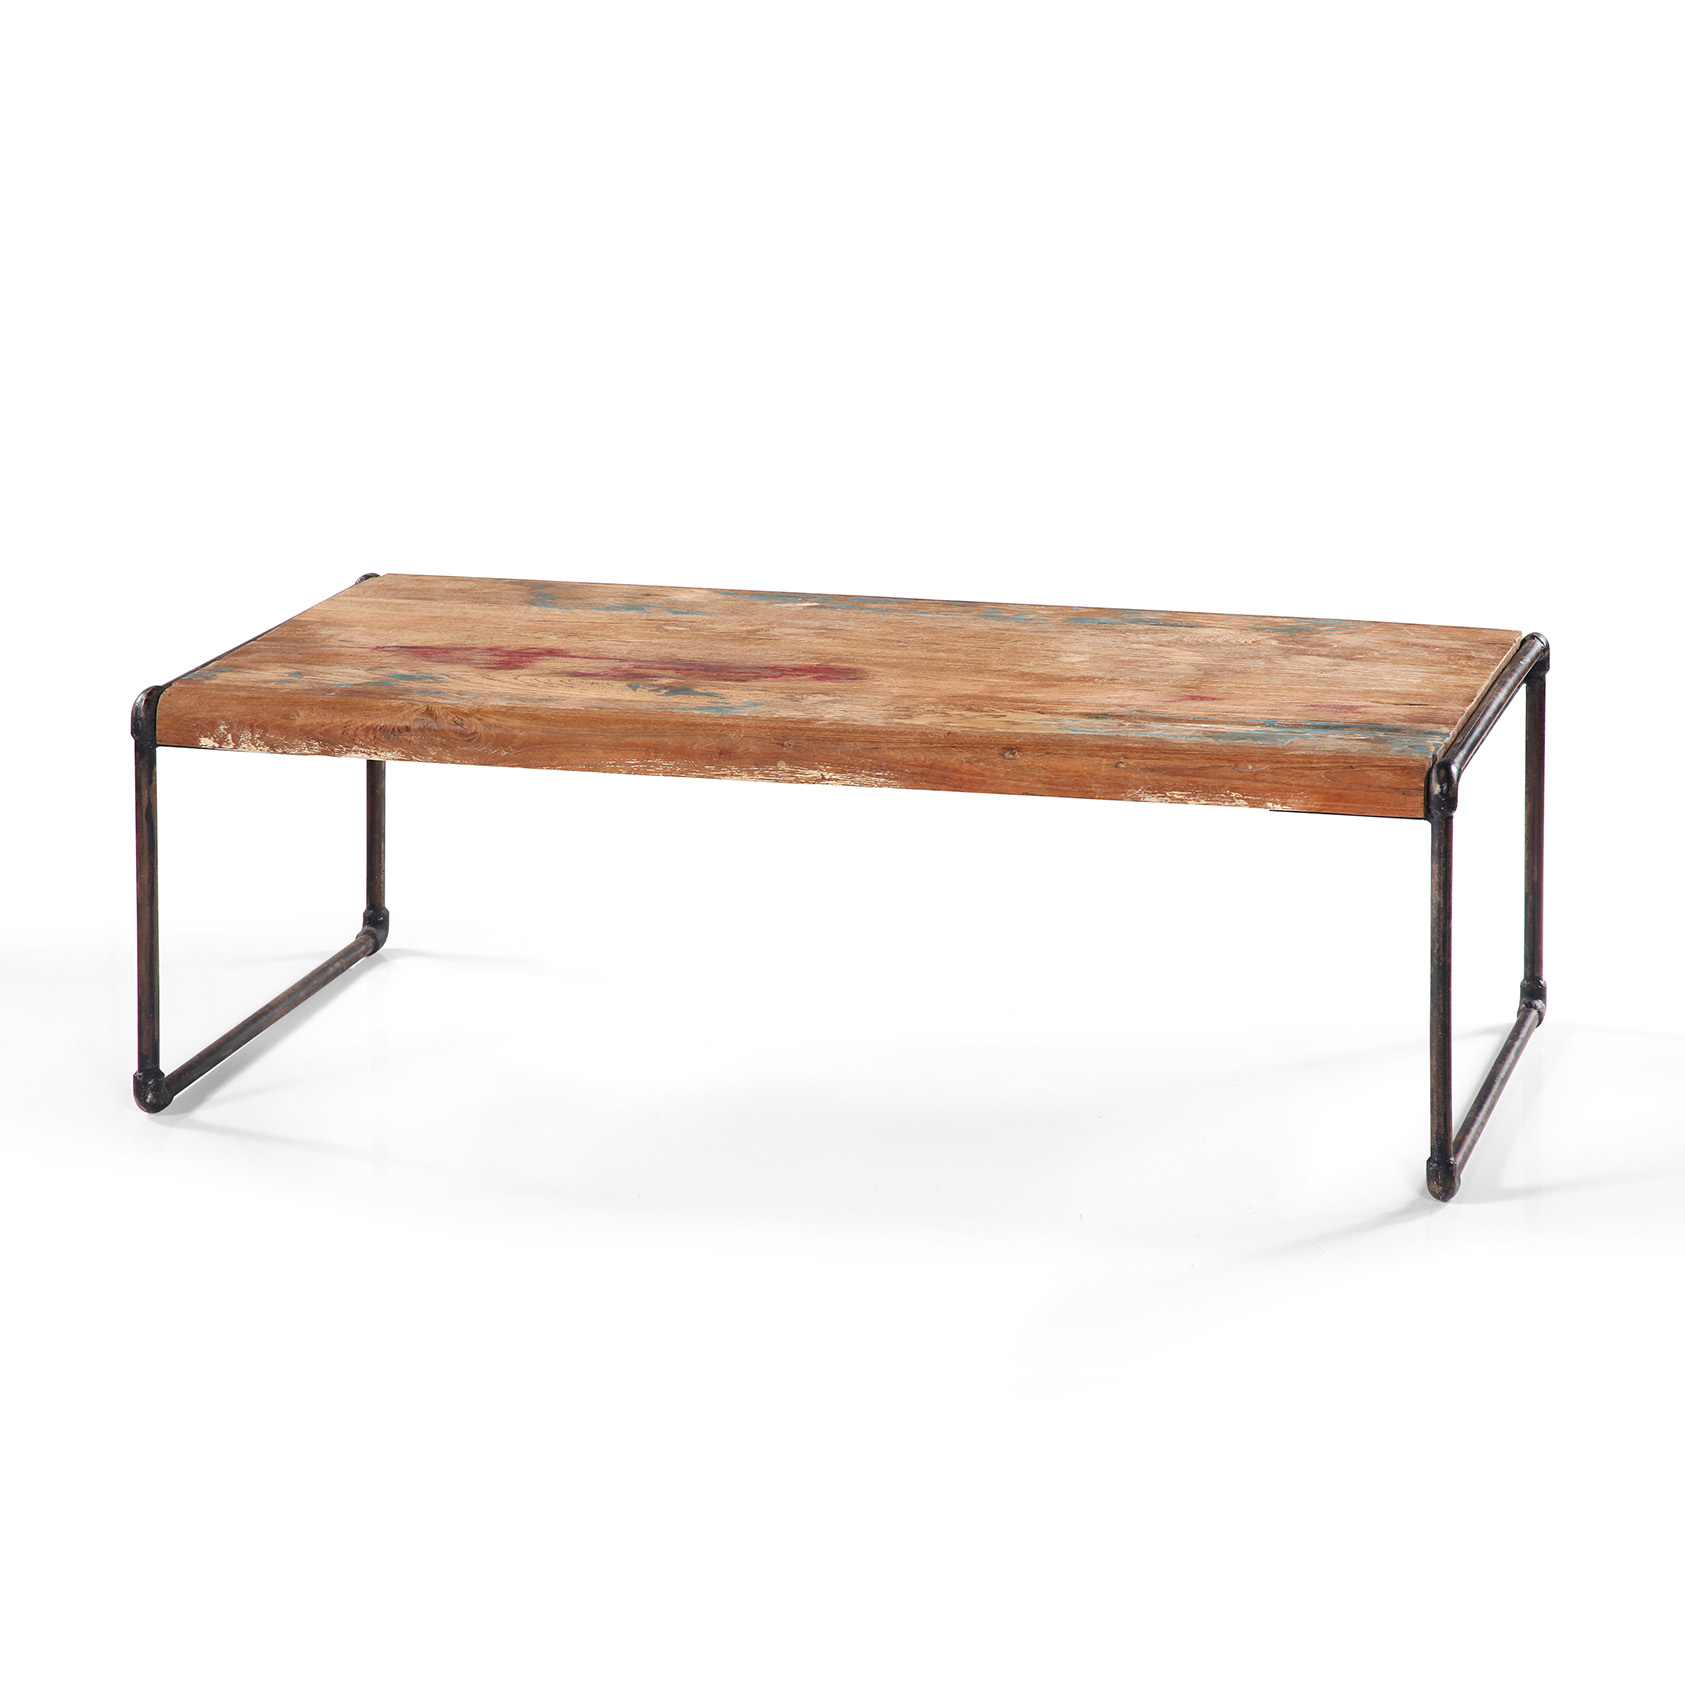 Table basse rectangulaire en teck massif recycl lombock - Table basse rectangulaire design ...